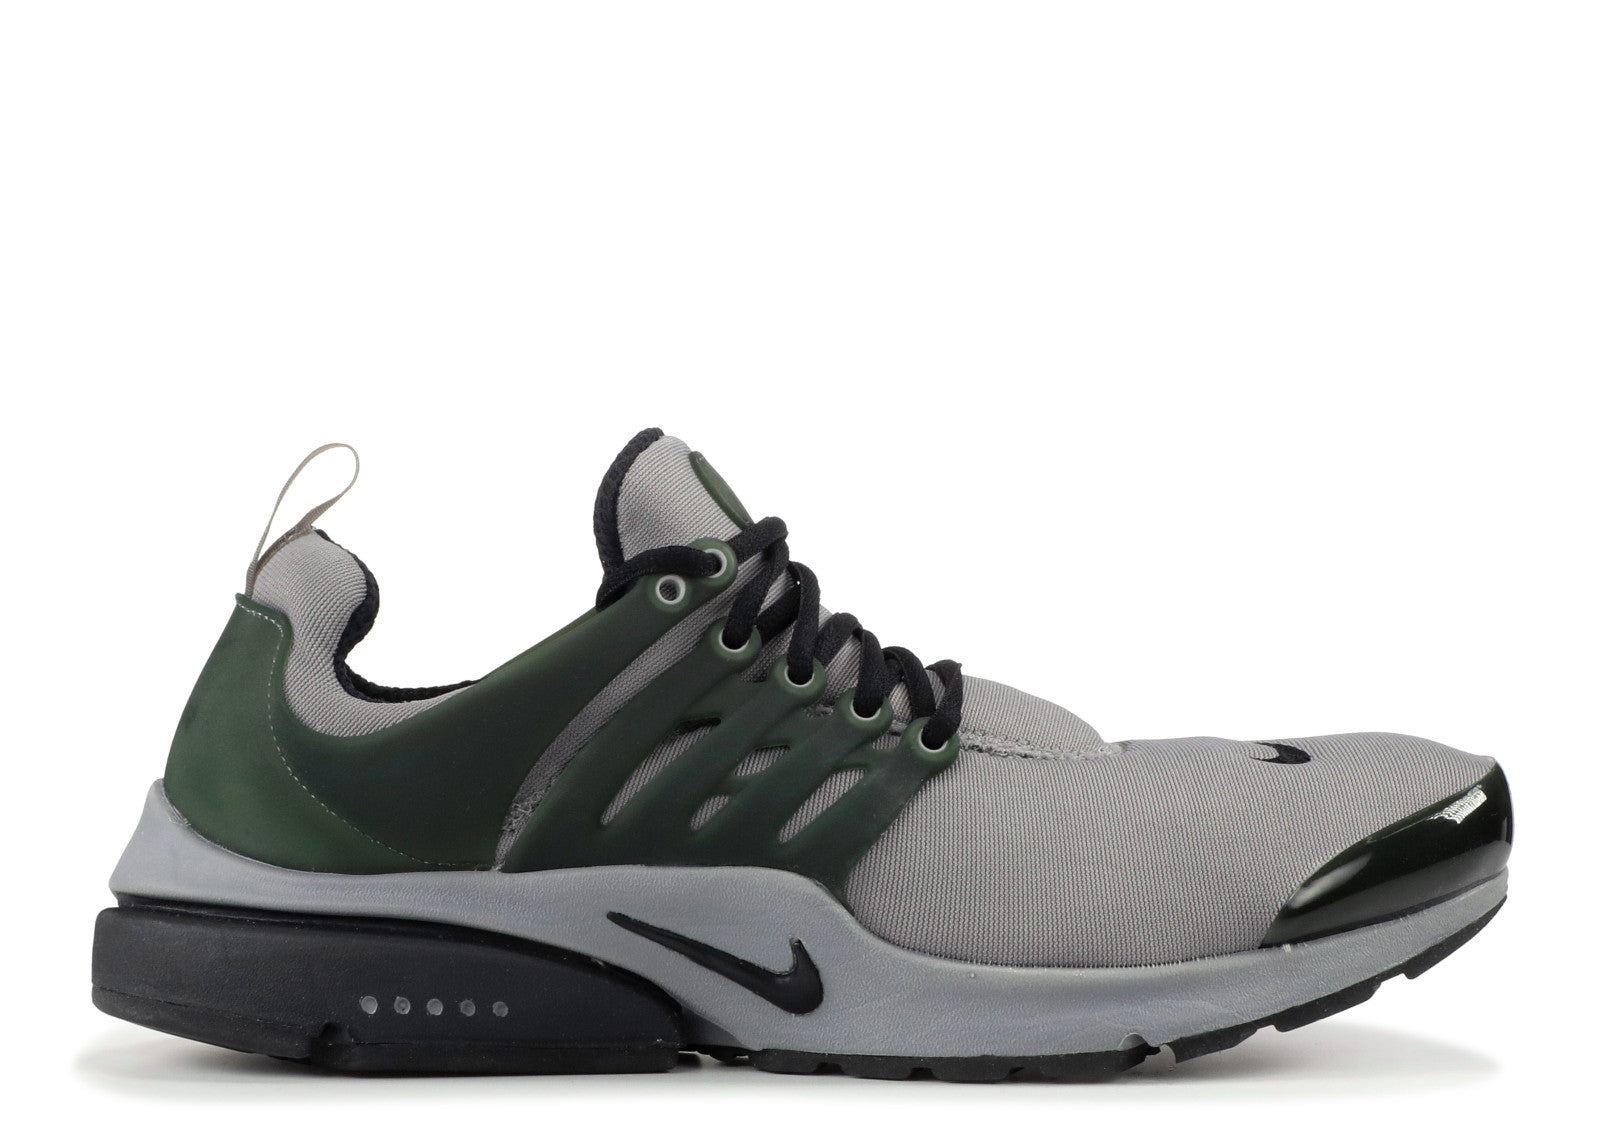 Air shoes NewtideforuOfficial Nike ShoesBuy Presto at TwZkXulOPi